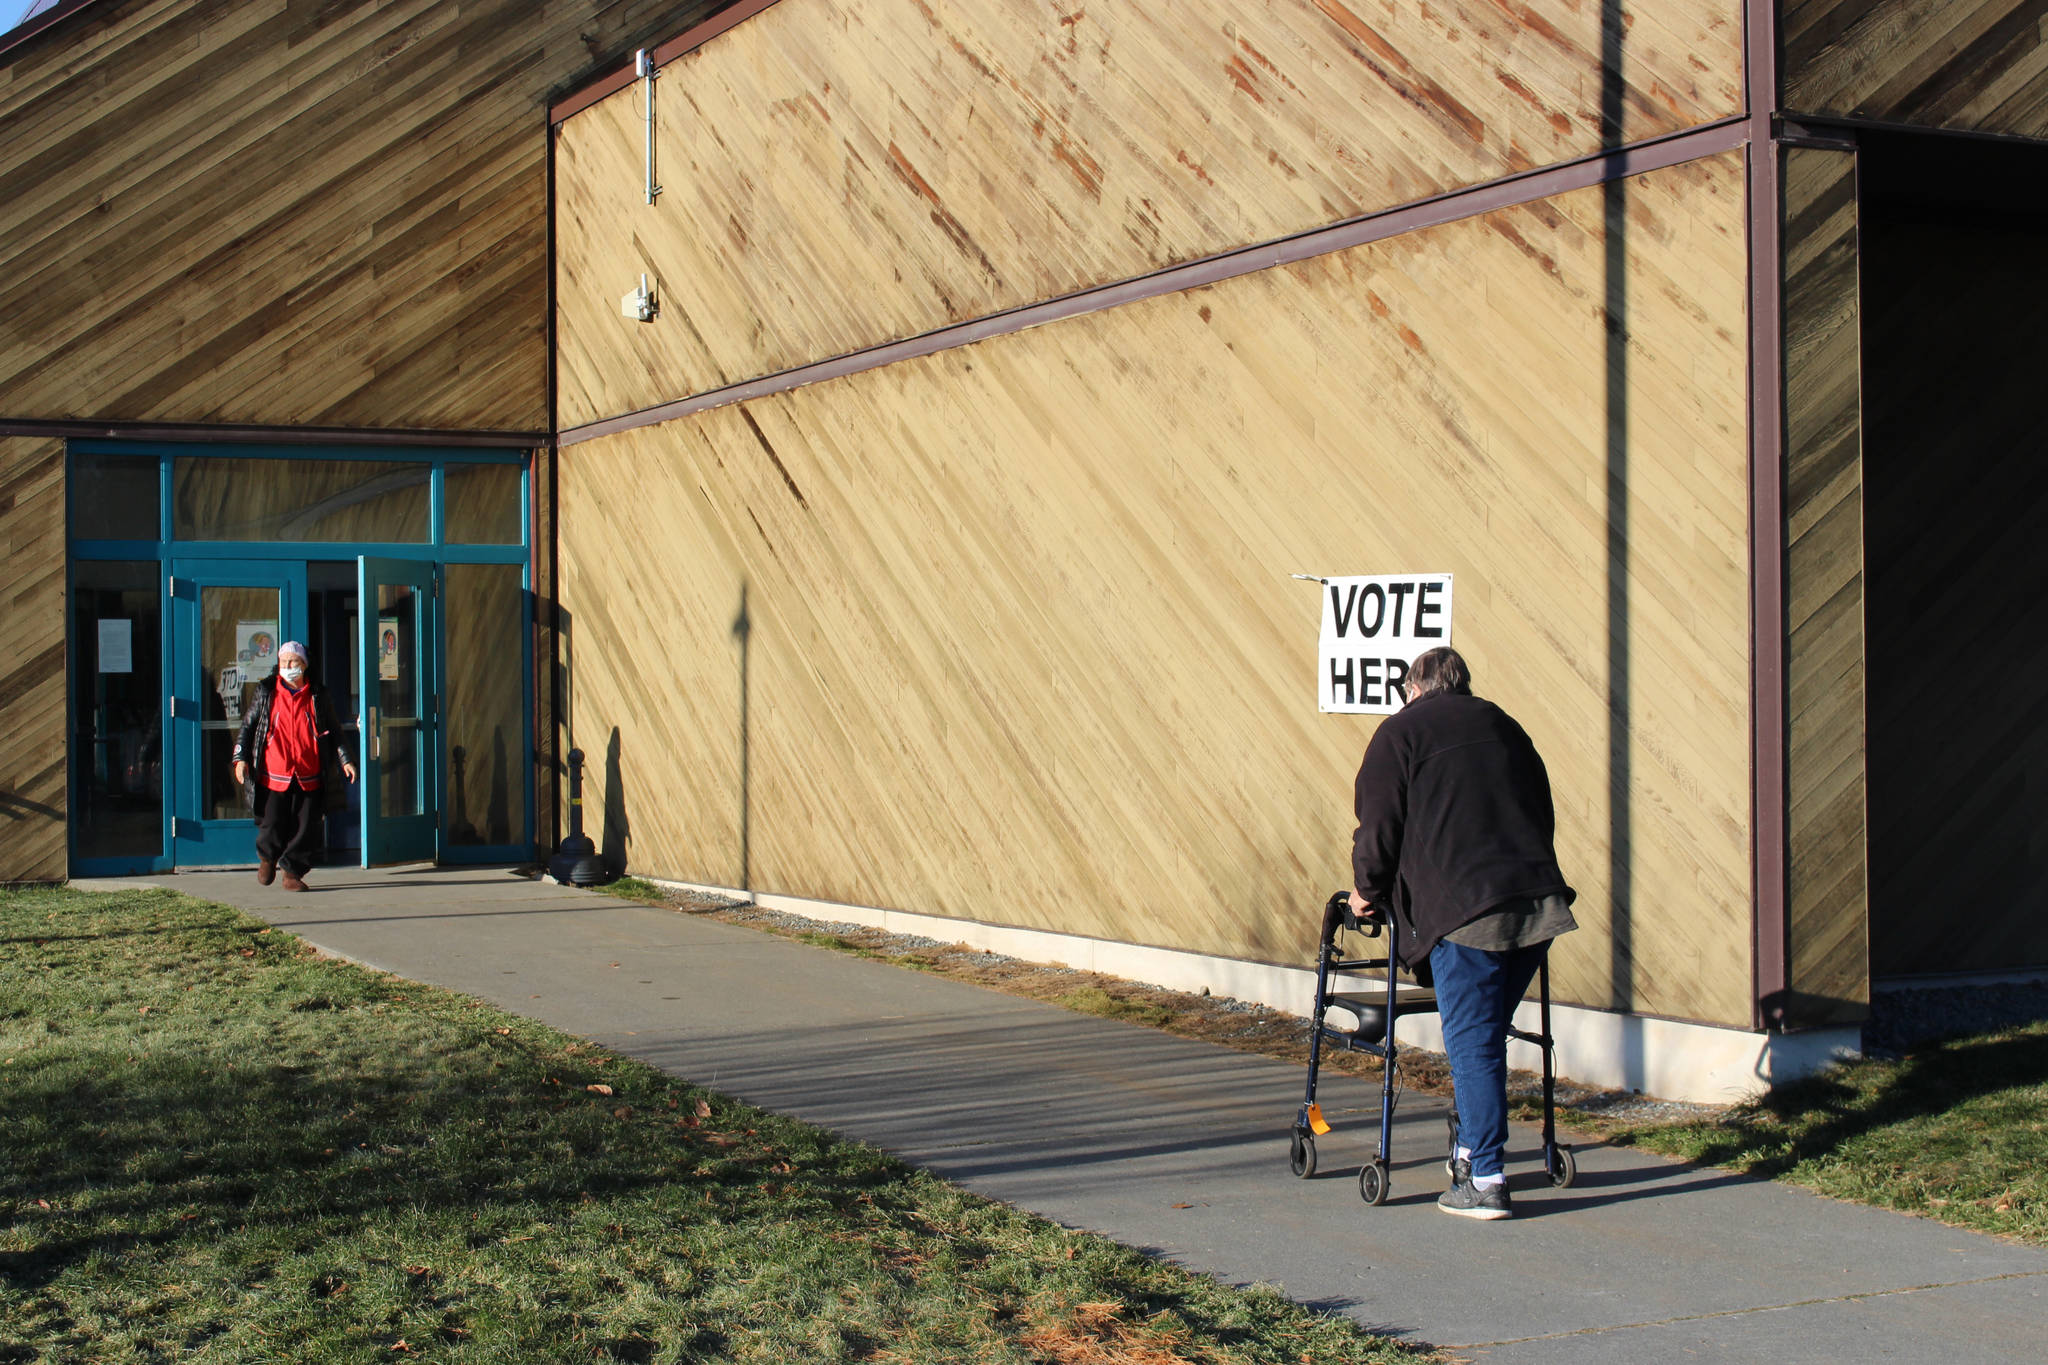 Kenai Peninsula voters head to the polls at the Soldotna Regional Sports Complex on Nov. 3, 2020. (Photo by Brian Mazurek/Peninsula Clarion)